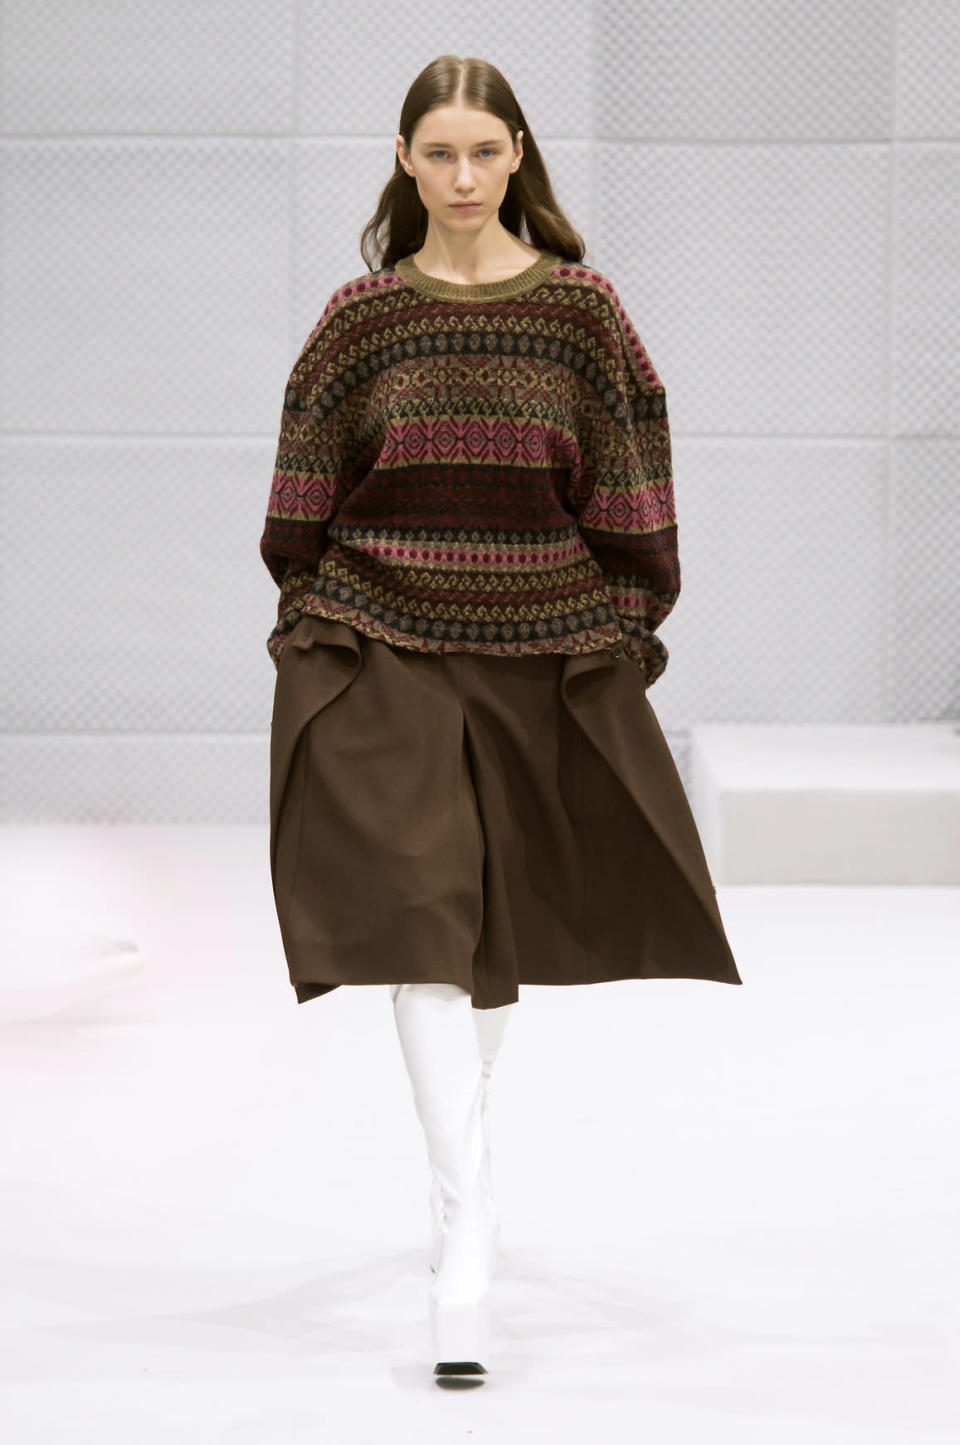 <p>A model walking during the Balenciaga Fall 2016 show wearing an intarsia knit sweater, spearheading the granny-sweater trend. </p><p><i>(Photo: ImaxTree)</i></p>